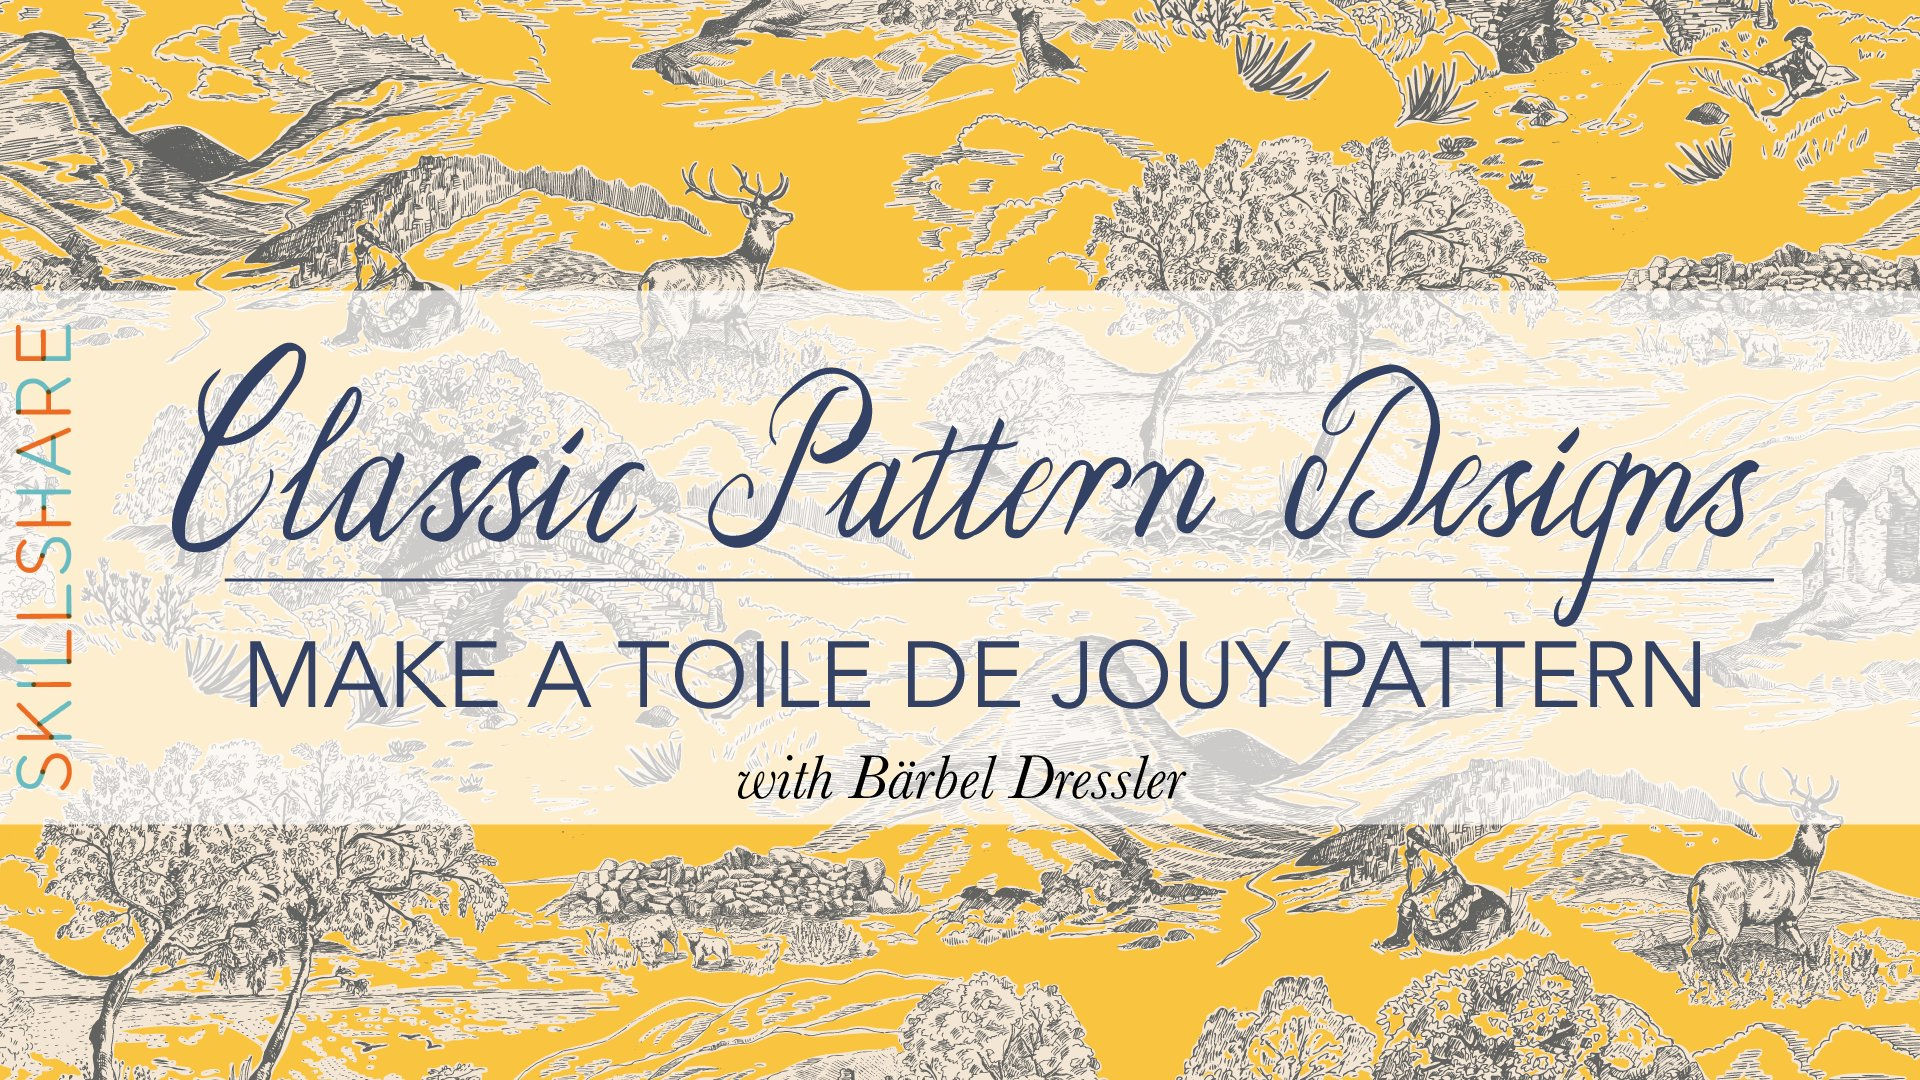 classic pattern designs make a toile de jouy pattern b rbel dressler skillshare. Black Bedroom Furniture Sets. Home Design Ideas